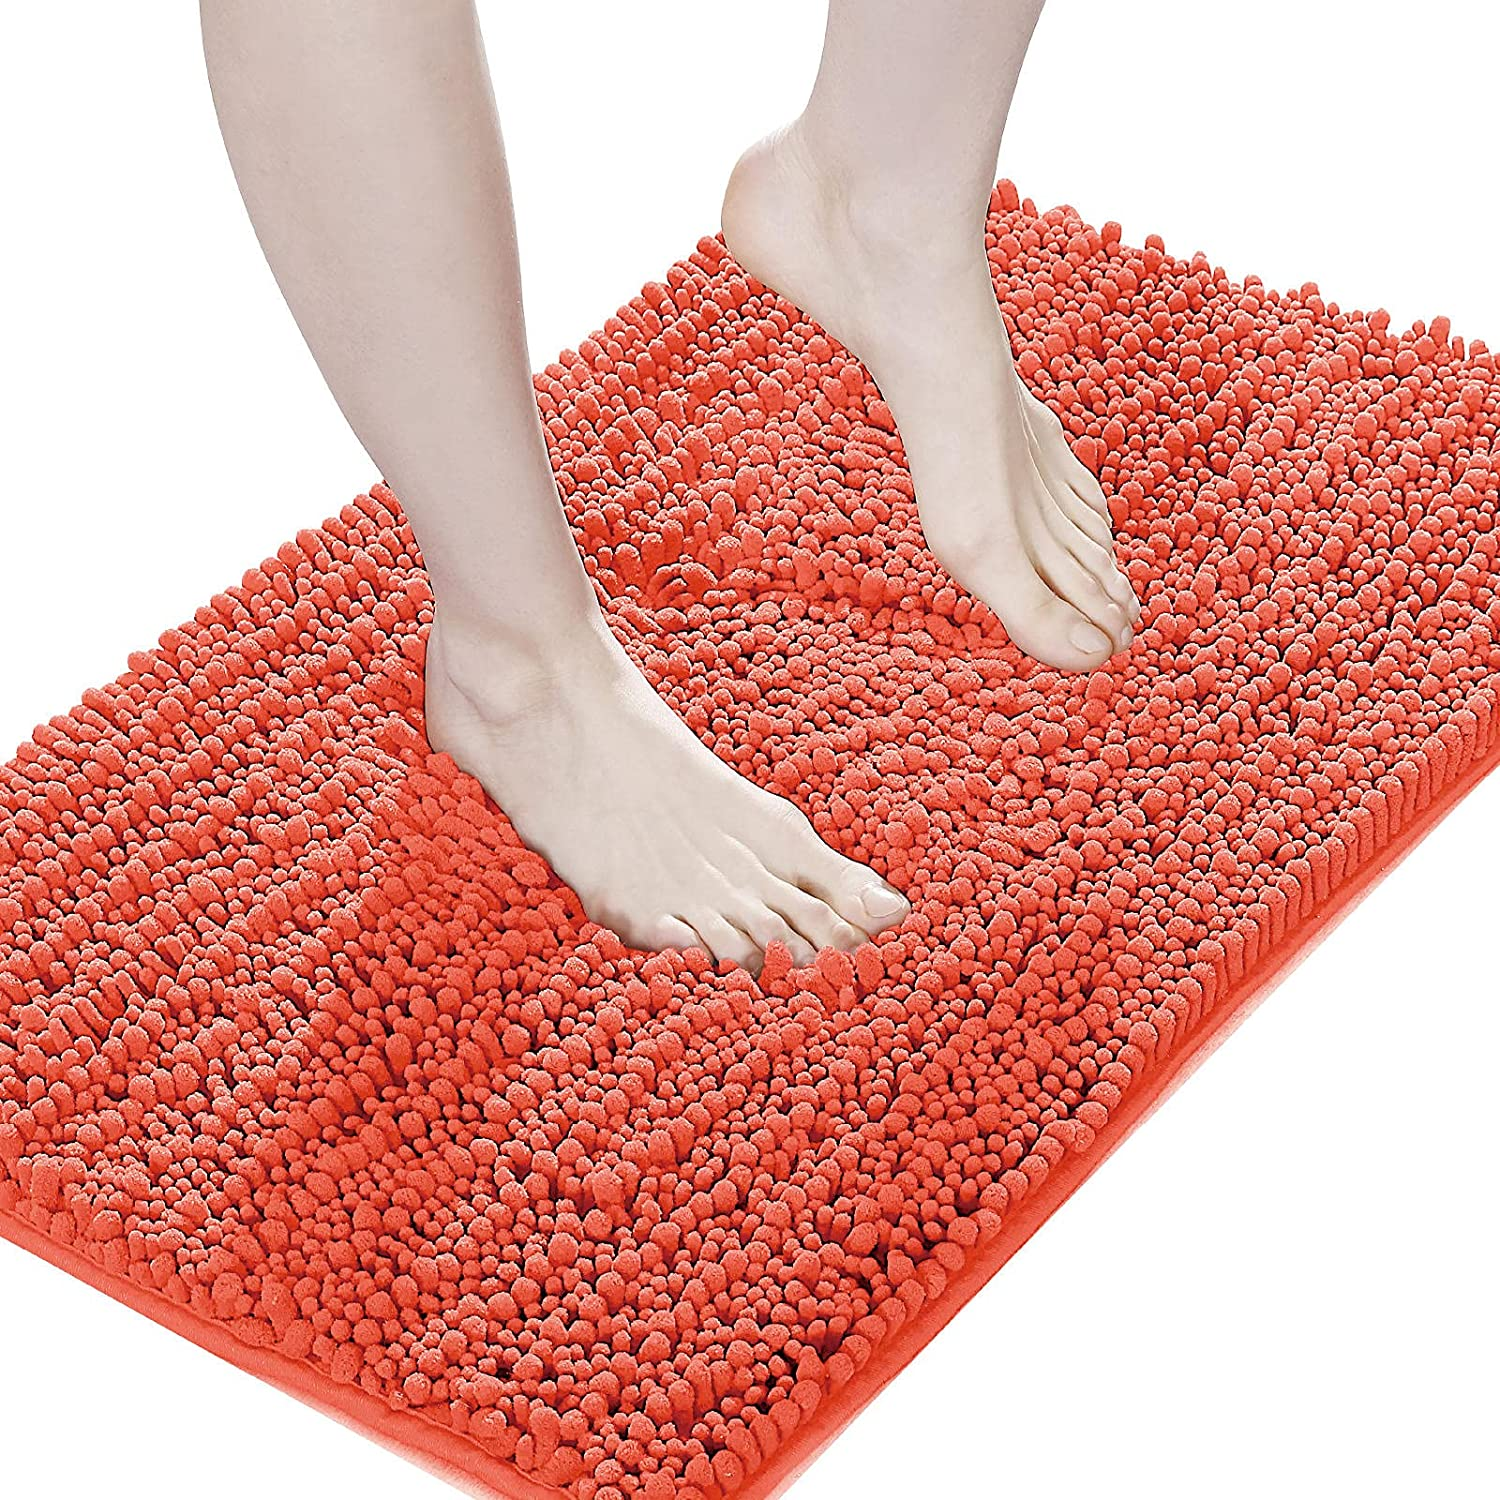 Suchtale Luxury Chenille Bathroom Rug, Non Slip Bath Mat (17x24 Inch Living Coral) Water Absorbent Soft Plush Shaggy Microfiber Rugs, Machine Washable Dry Extra Thick Small Carpet for Shower Floor